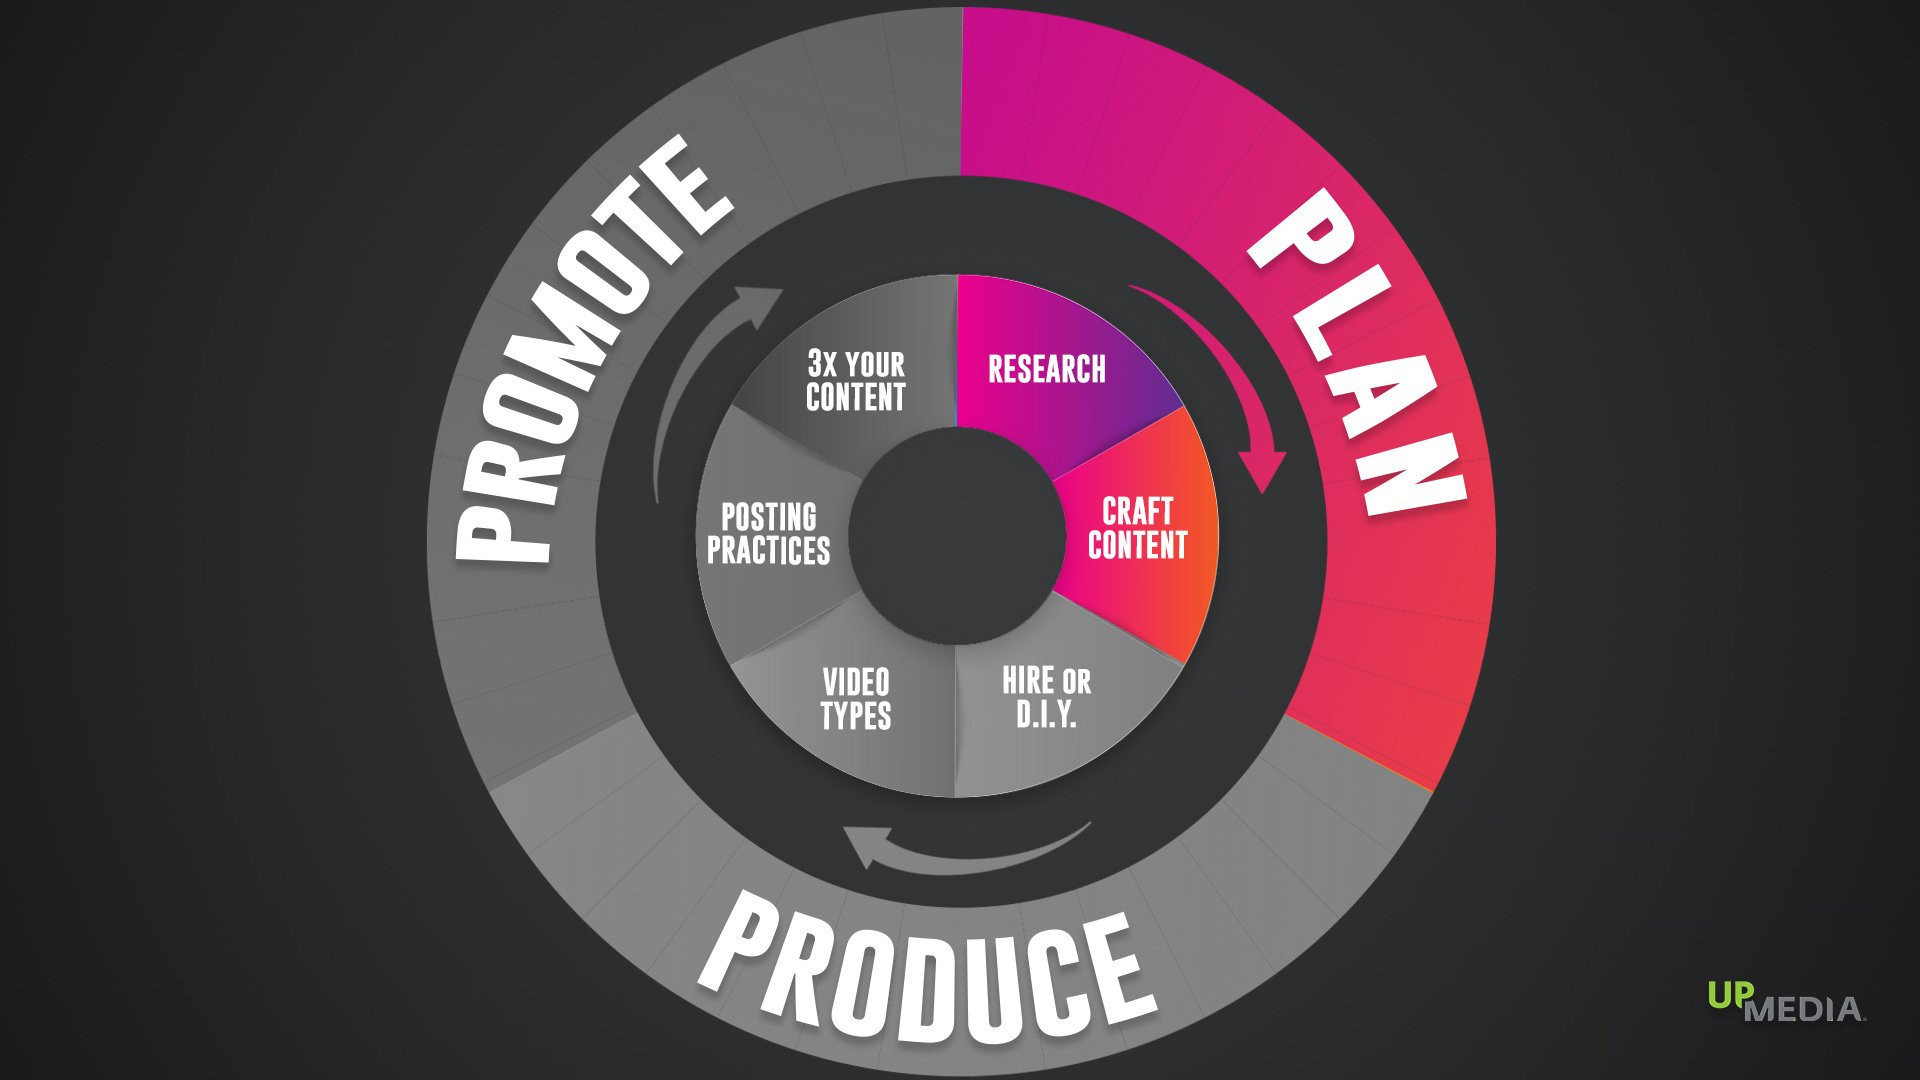 Business video strategy: A circle divided into three sections: Plan, Produce, Promote. Each section has a different colour.